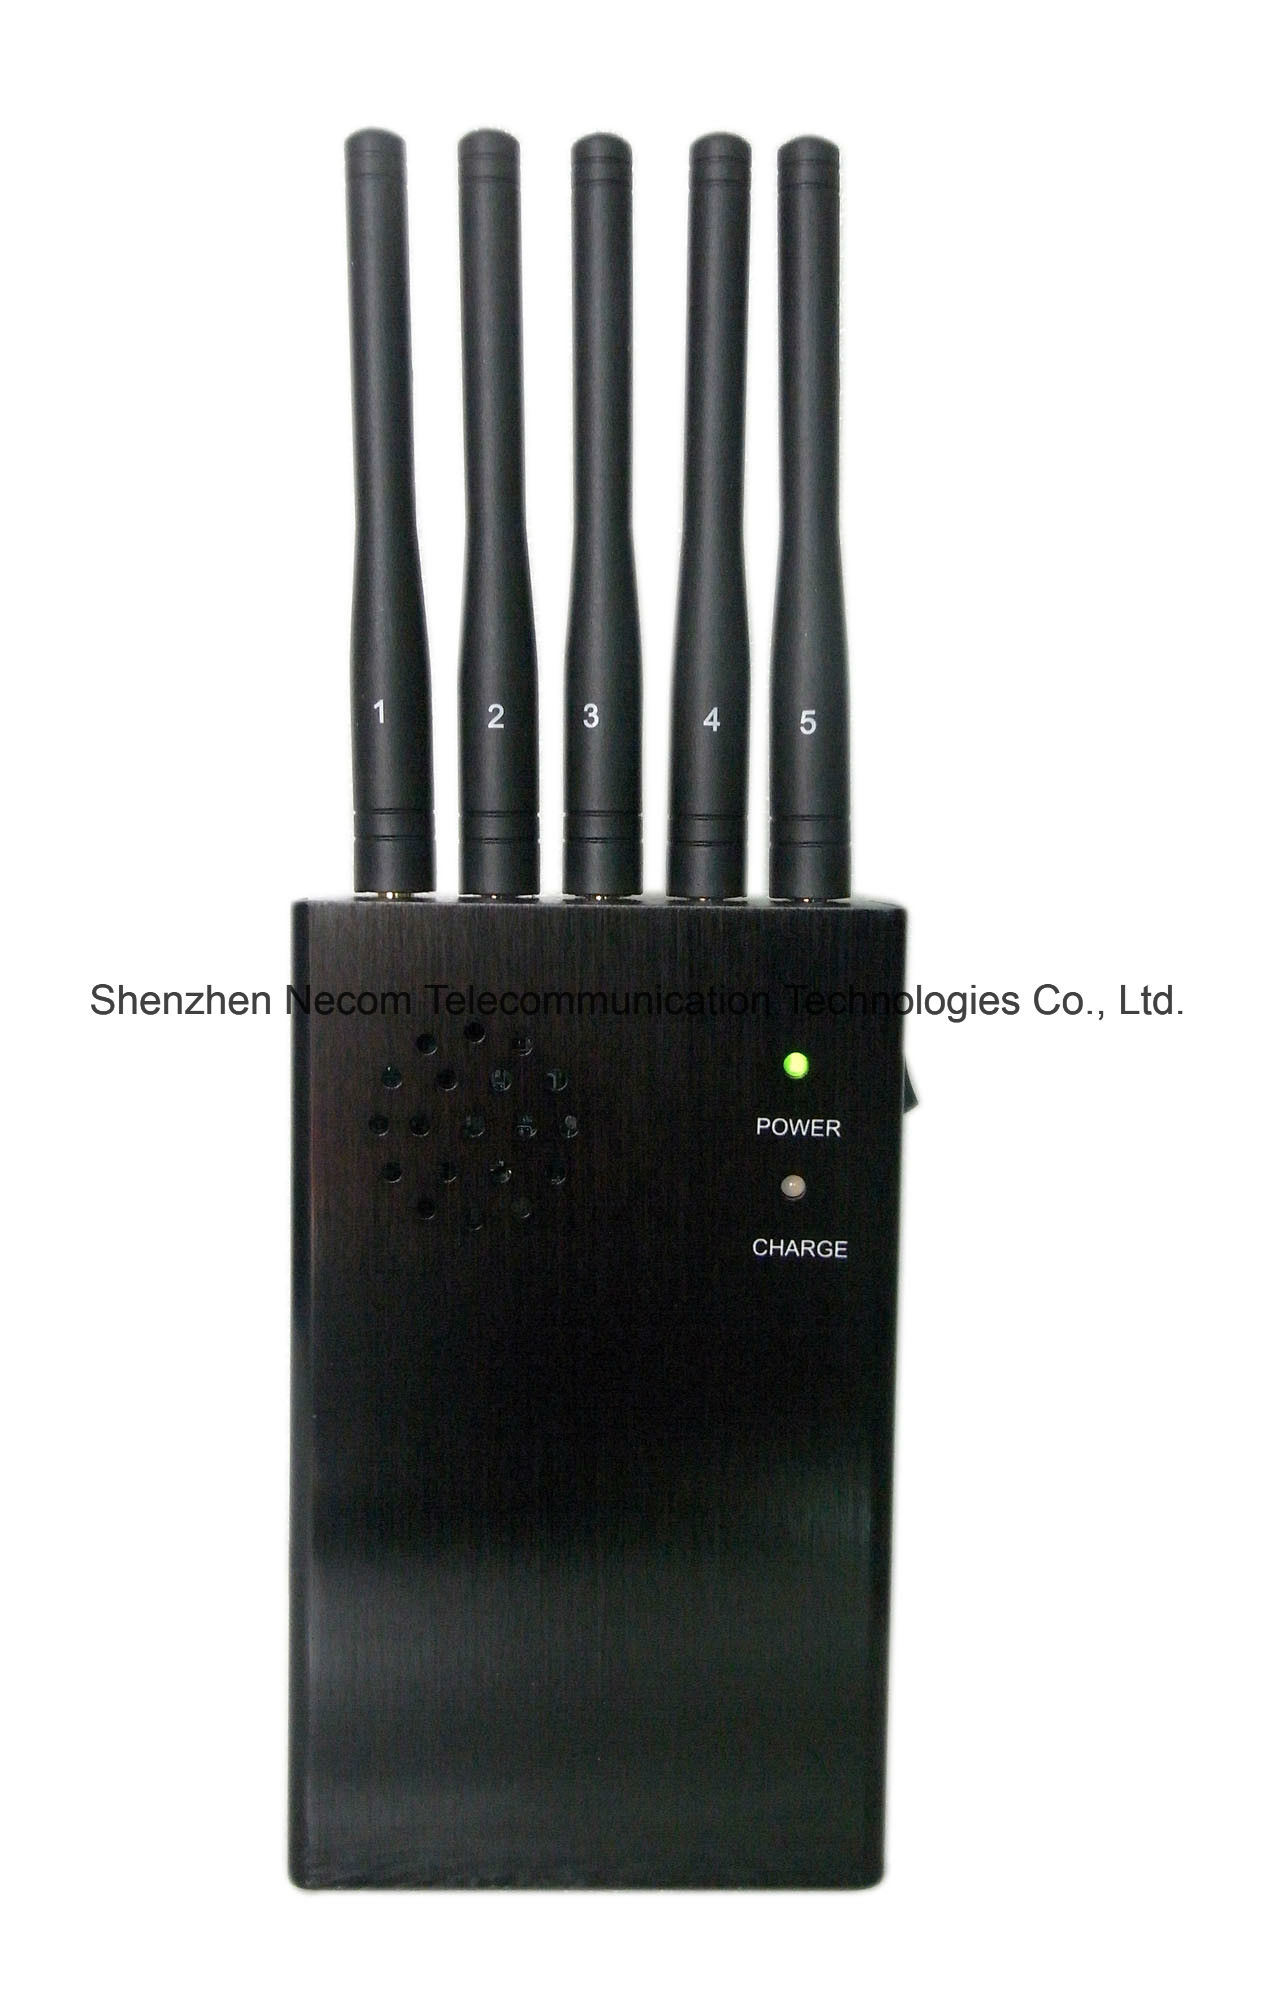 phone jammer detect gpu - China Cellulare Segnale Jammer, New Handheld 5 Bands 4G Jammer WiFi GPS Lojack Jammer with Car Charger, Portable Mobile Phone & Wi-Fi/Bluetooth Jammer - China 5 Band Signal Blockers, Five Antennas Jammers